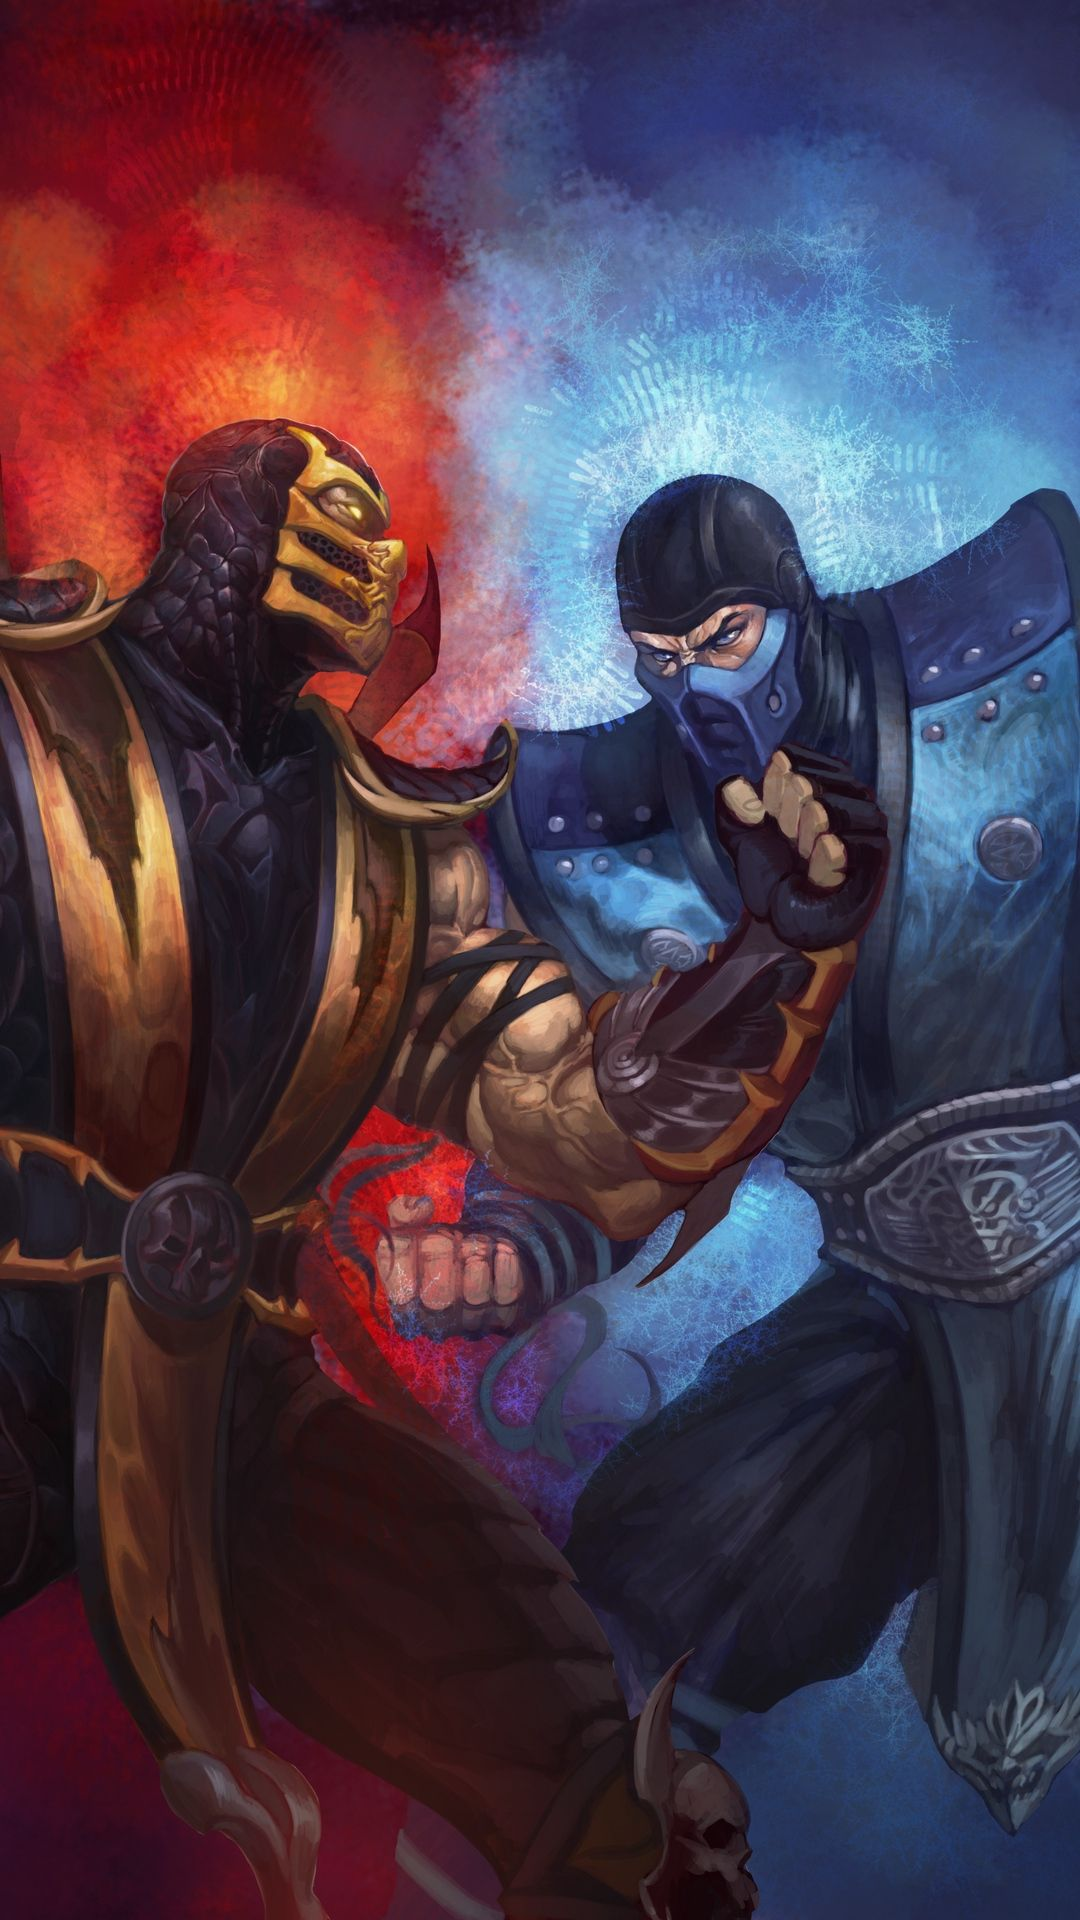 1080x1920 Wallpaper Mortal Kombat Scorpion Sub Zero Punch Ice